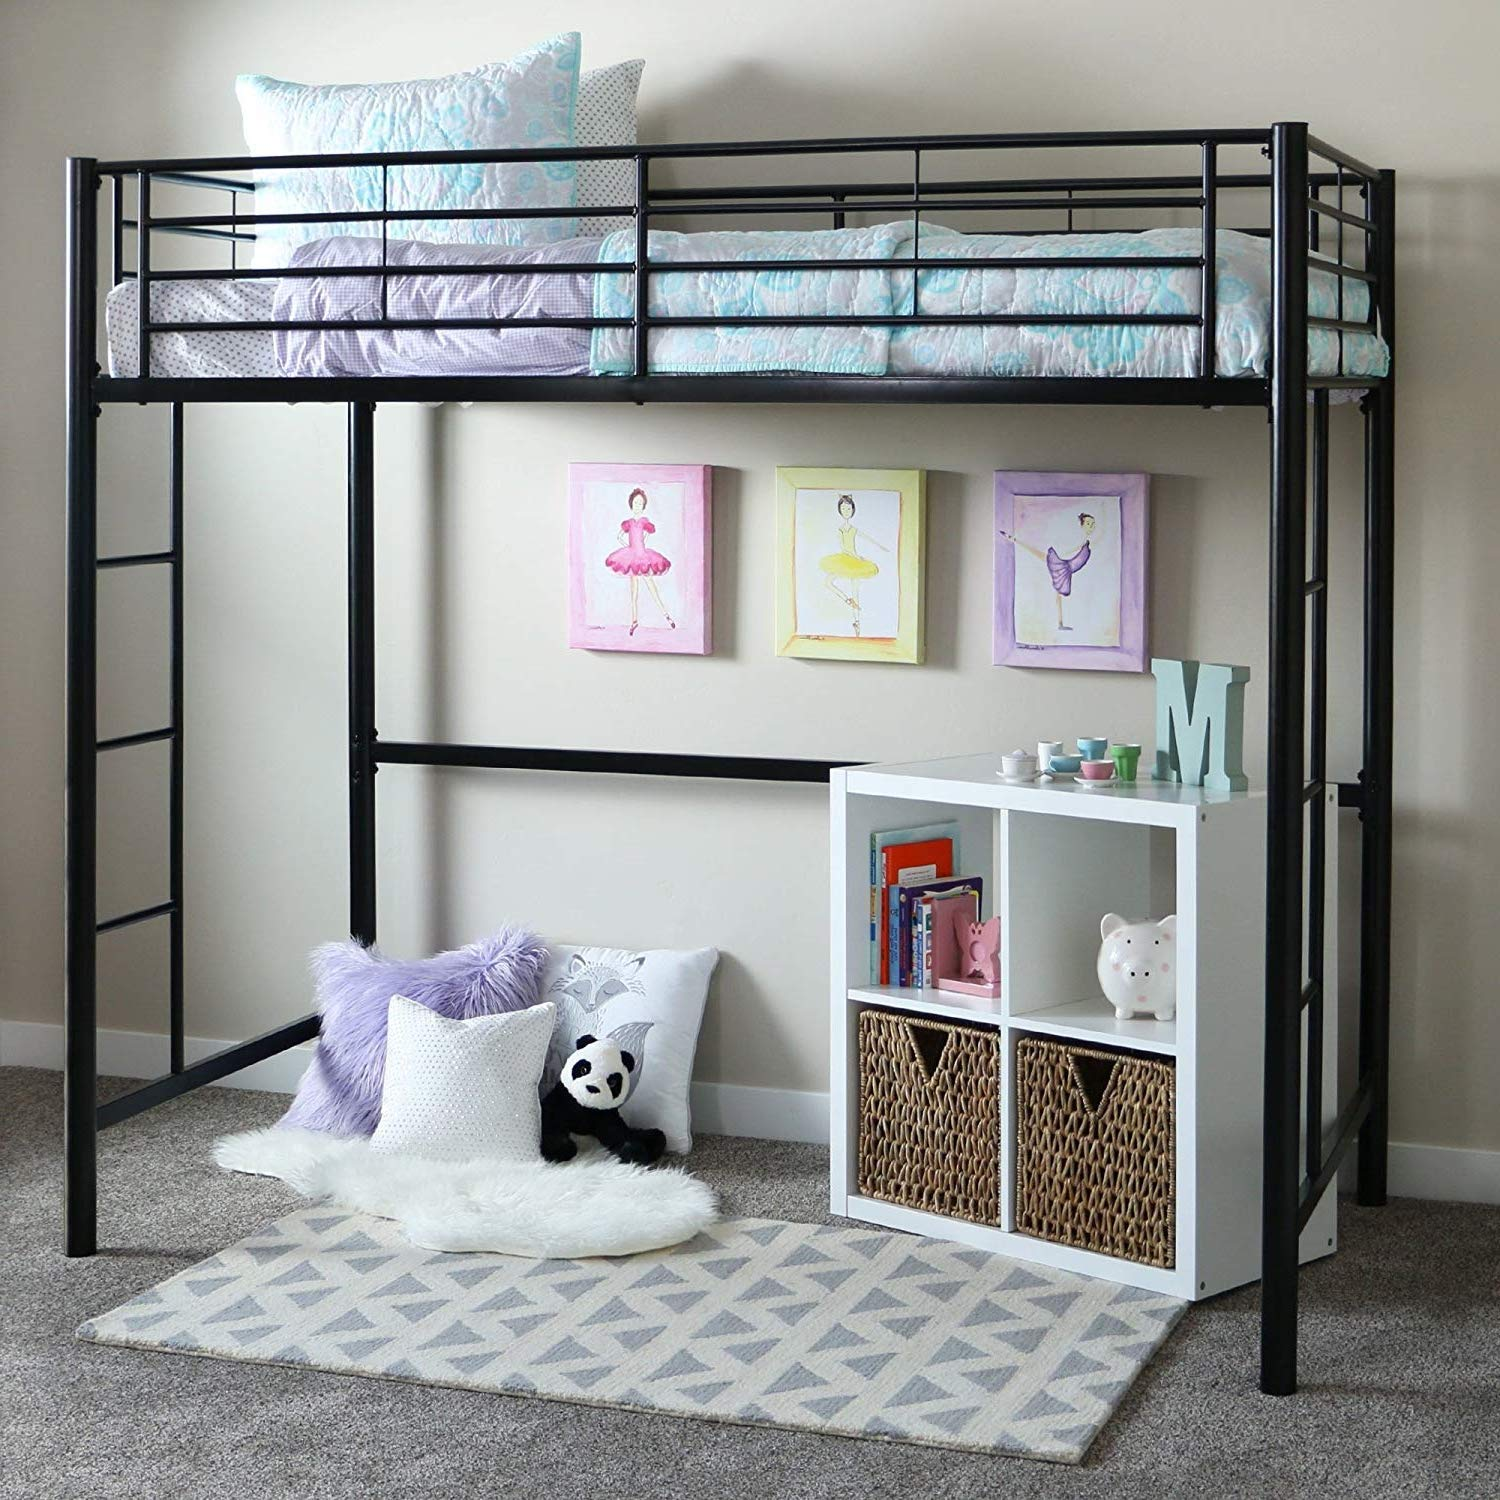 Bunk Beds for Kids Toddler Twin Metal Loft Black Your Child Will Sleep in Style and Great Solution for Your Space Saving Needs by HomeTeks